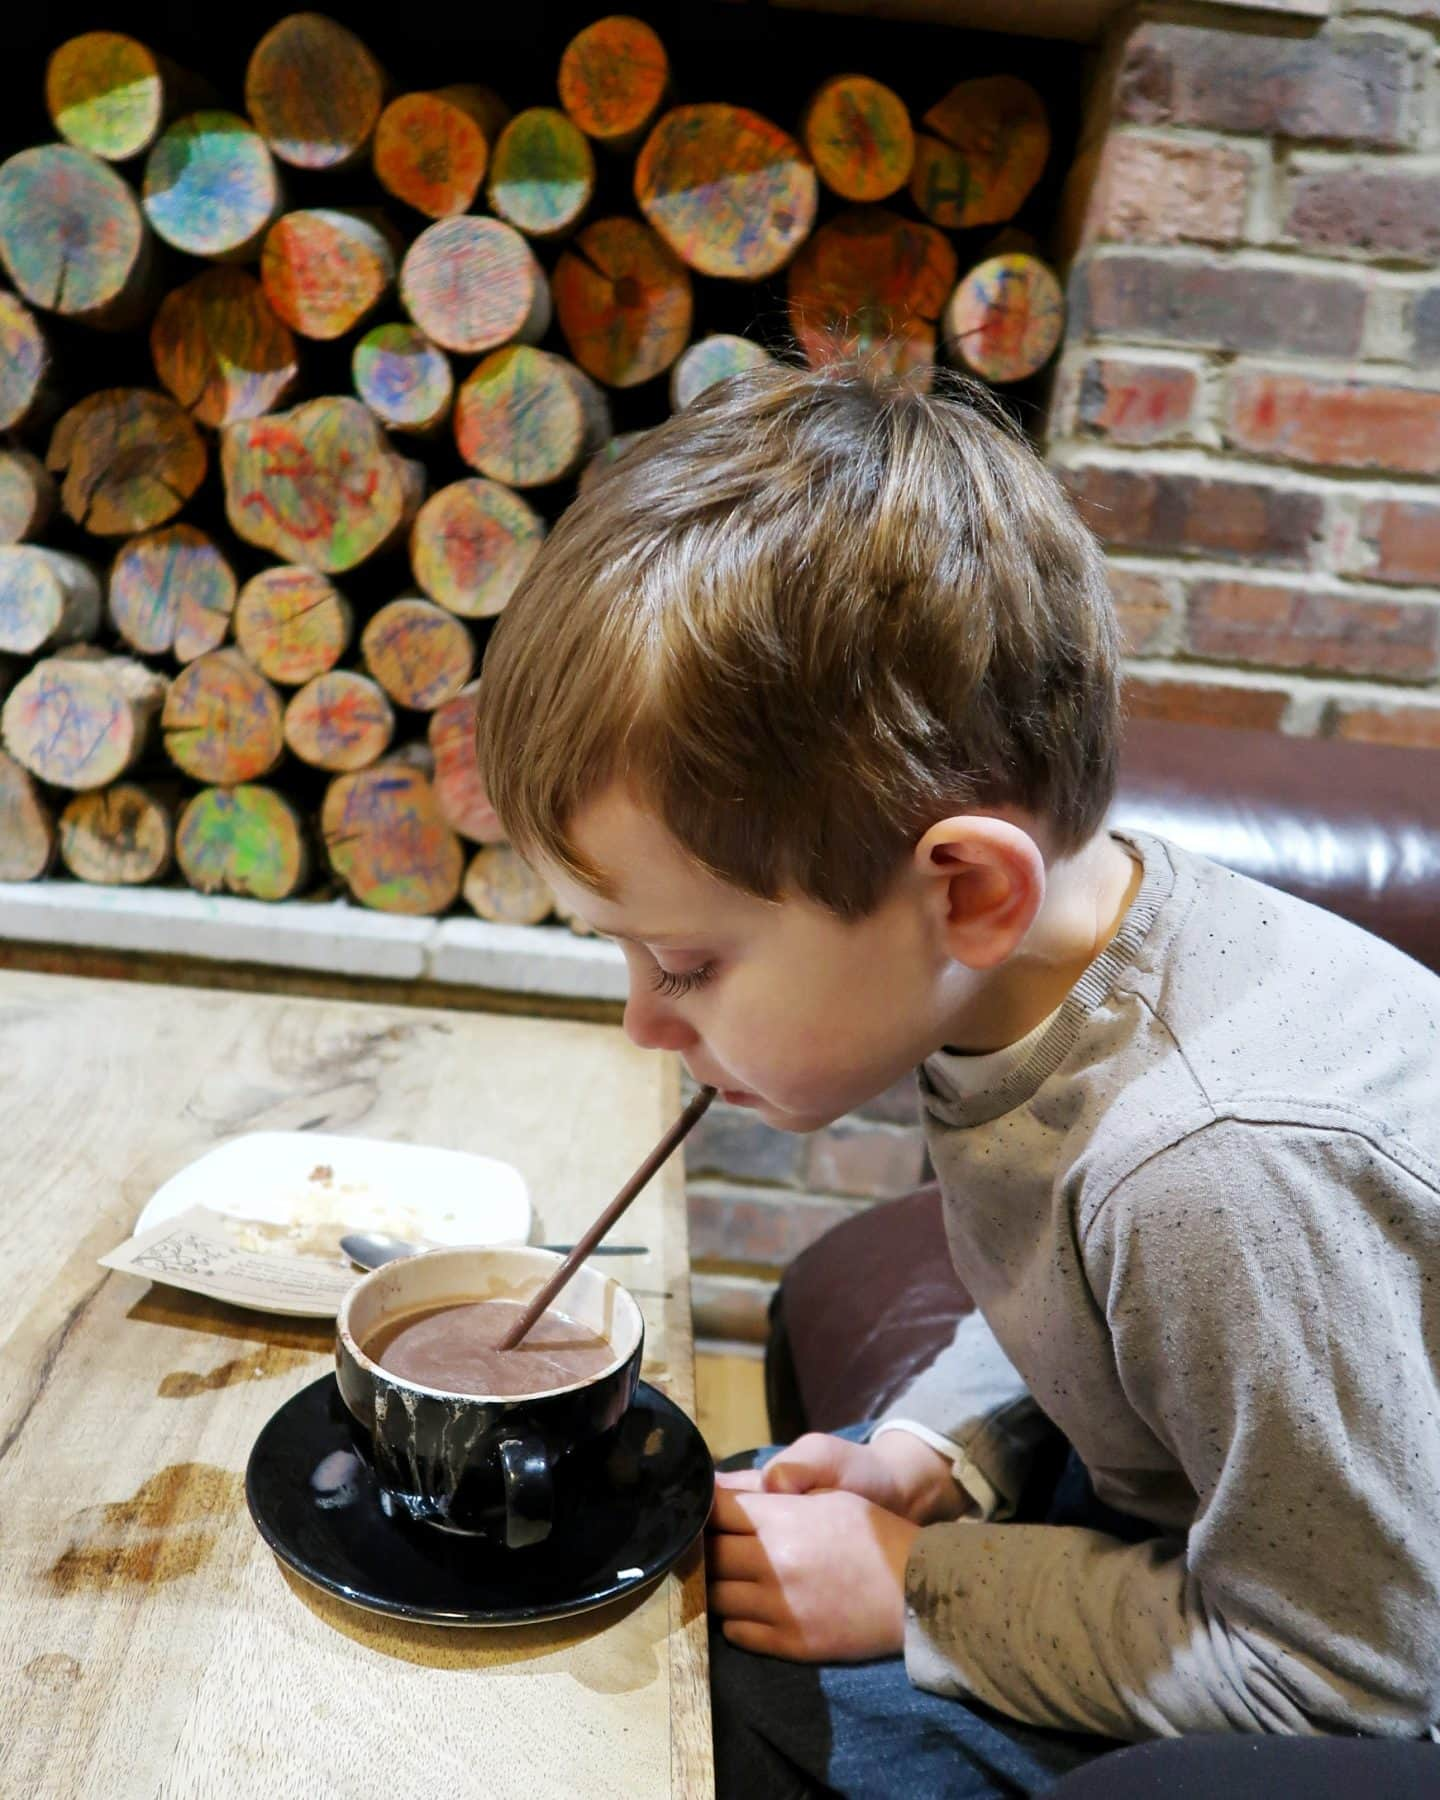 Boy drinking hot chocolate from a straw